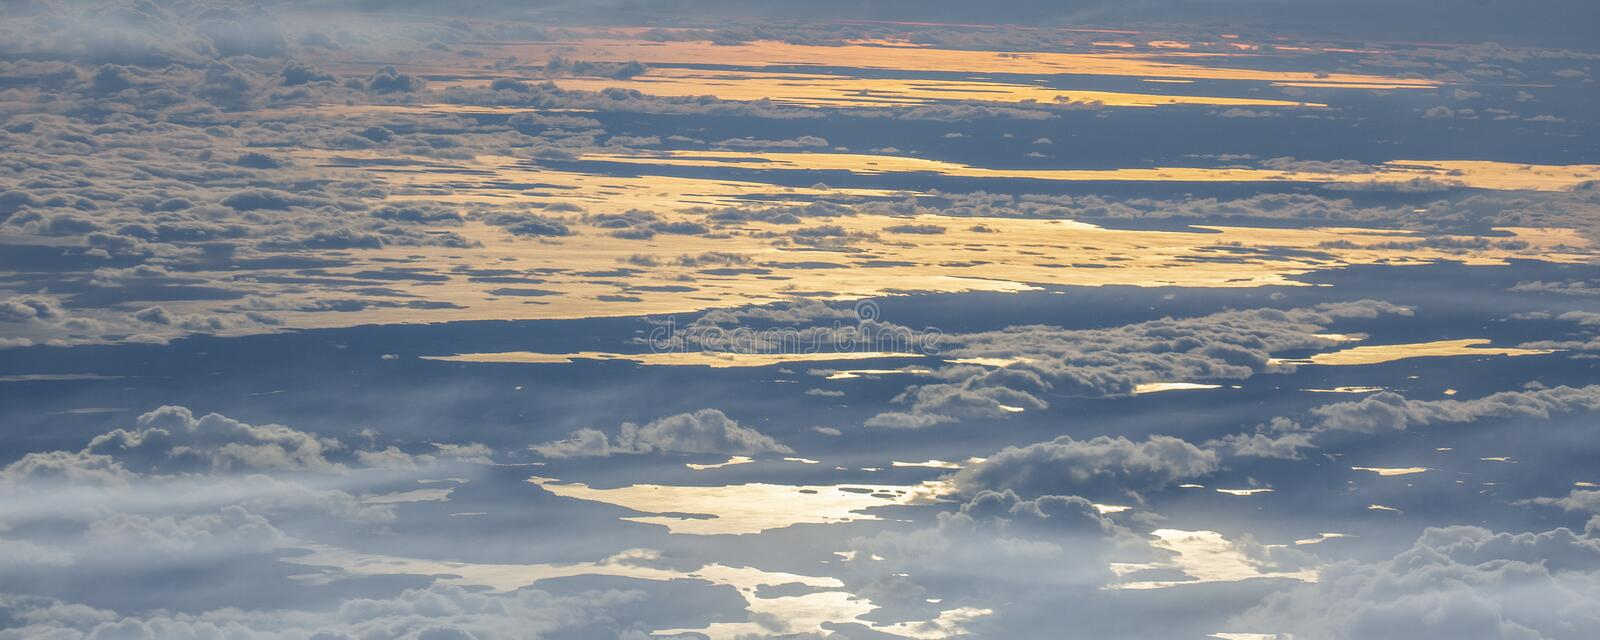 6Take an aerial view of the ice and sunrise over the bering strait.(1). The bering strait is located in the high latitudes, cold weather, many storms stock image